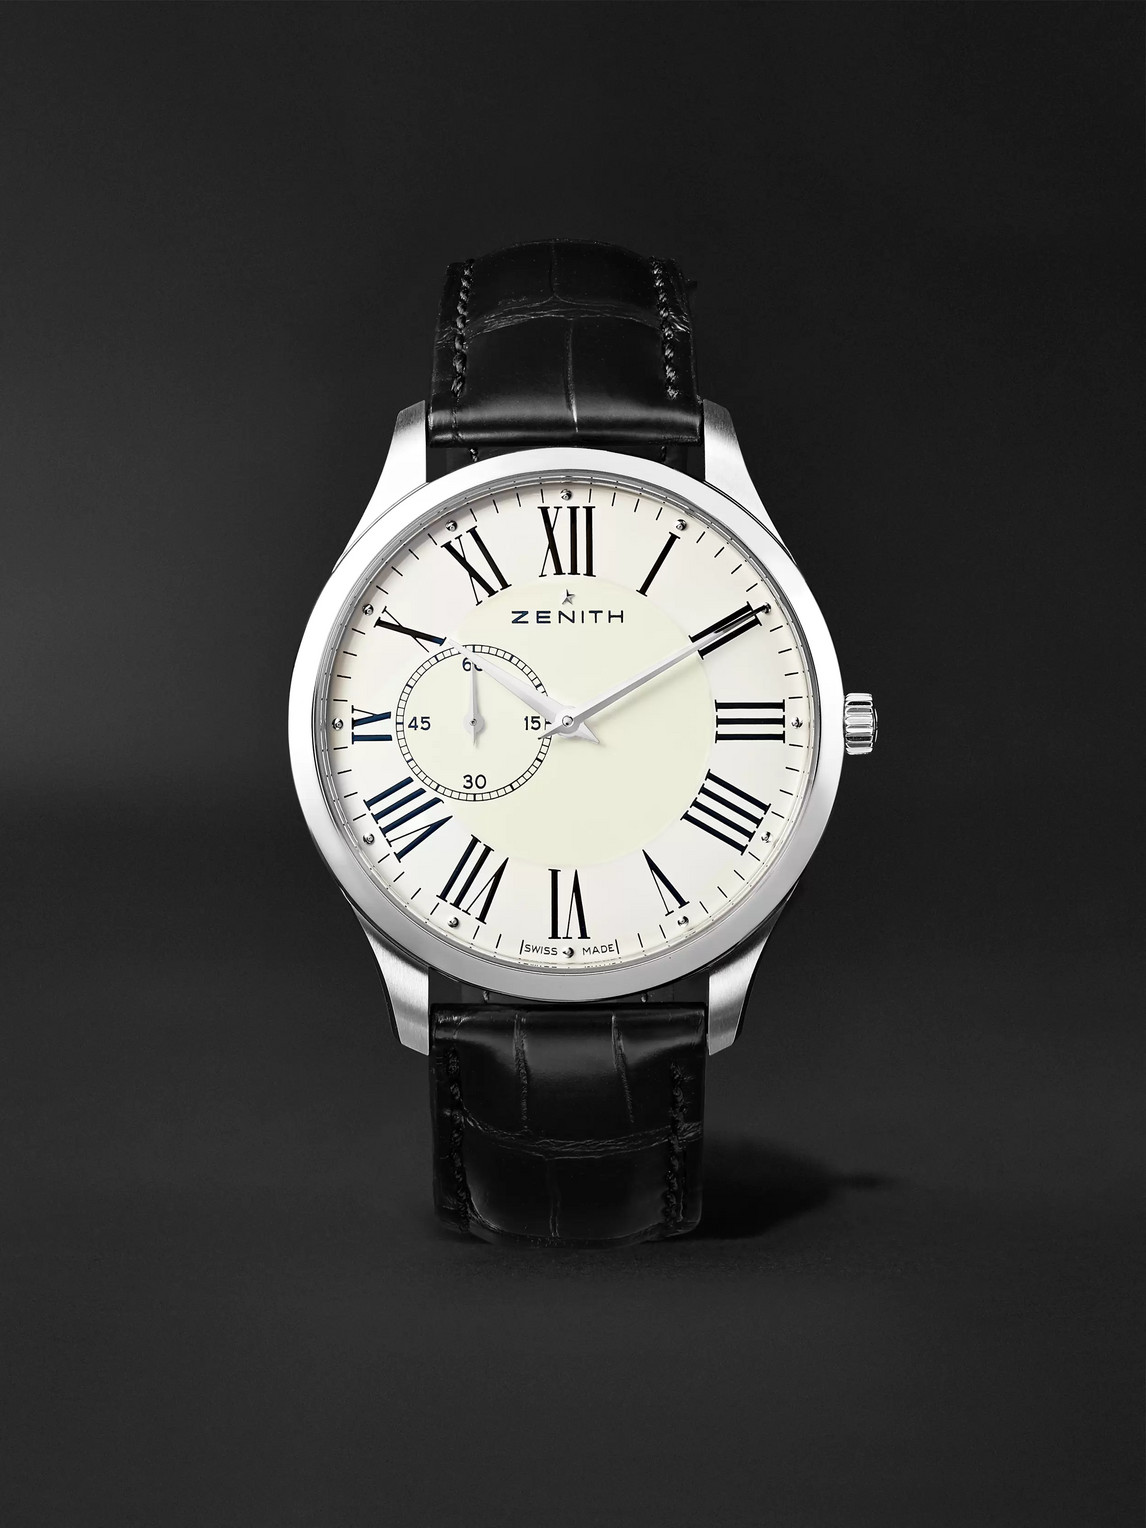 Zenith Elite Ultra-thin Roman Dial 40mm Stainless Steel And Alligator Watch, Ref. No. 03.2010.681/11.c493 In White